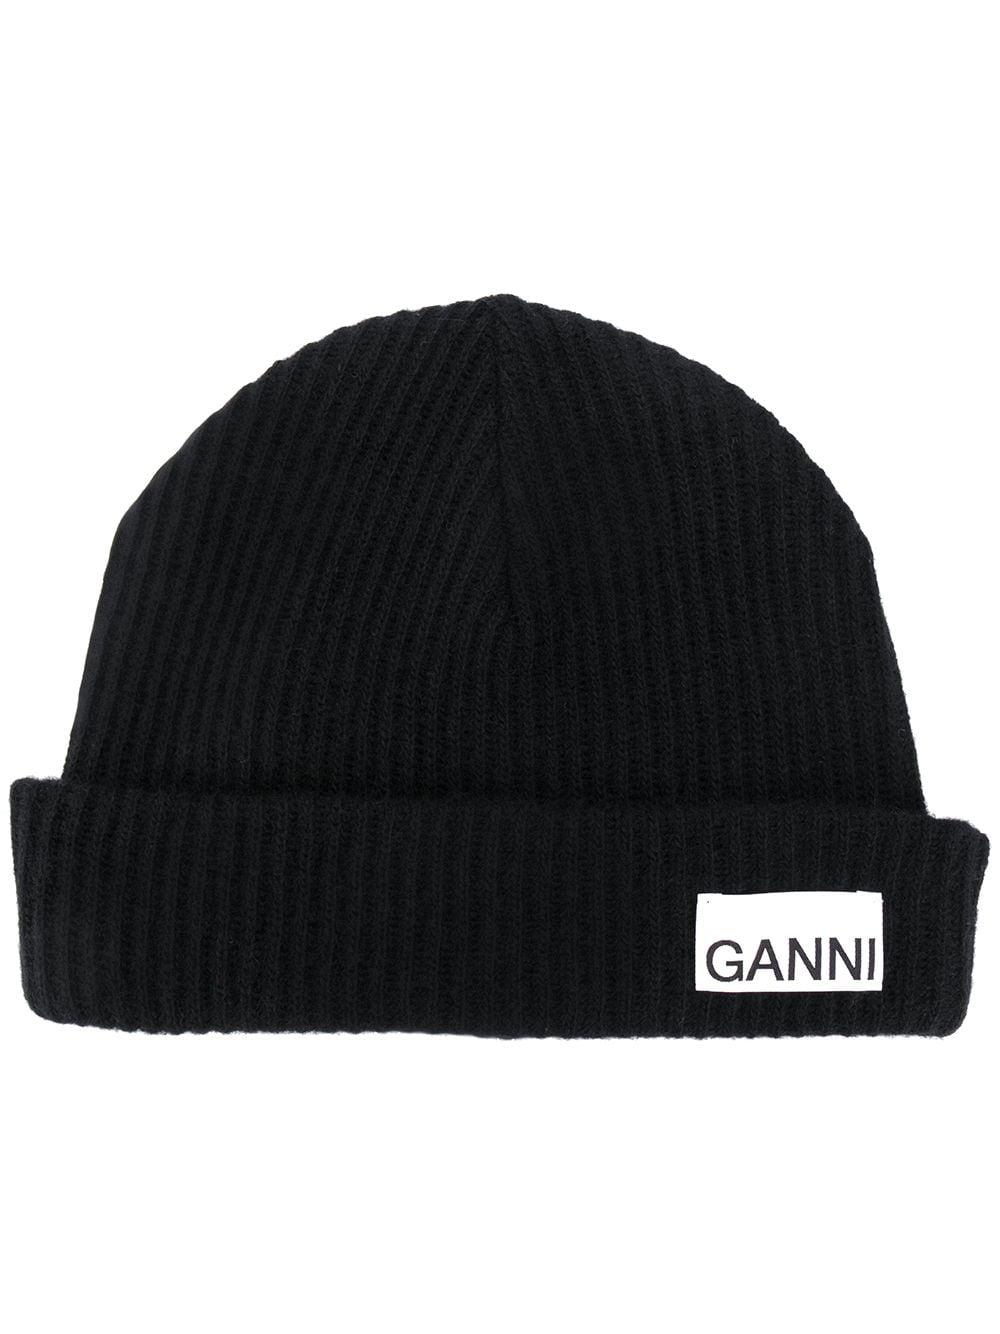 Recycled Wool Knit Beanie Item # A2841